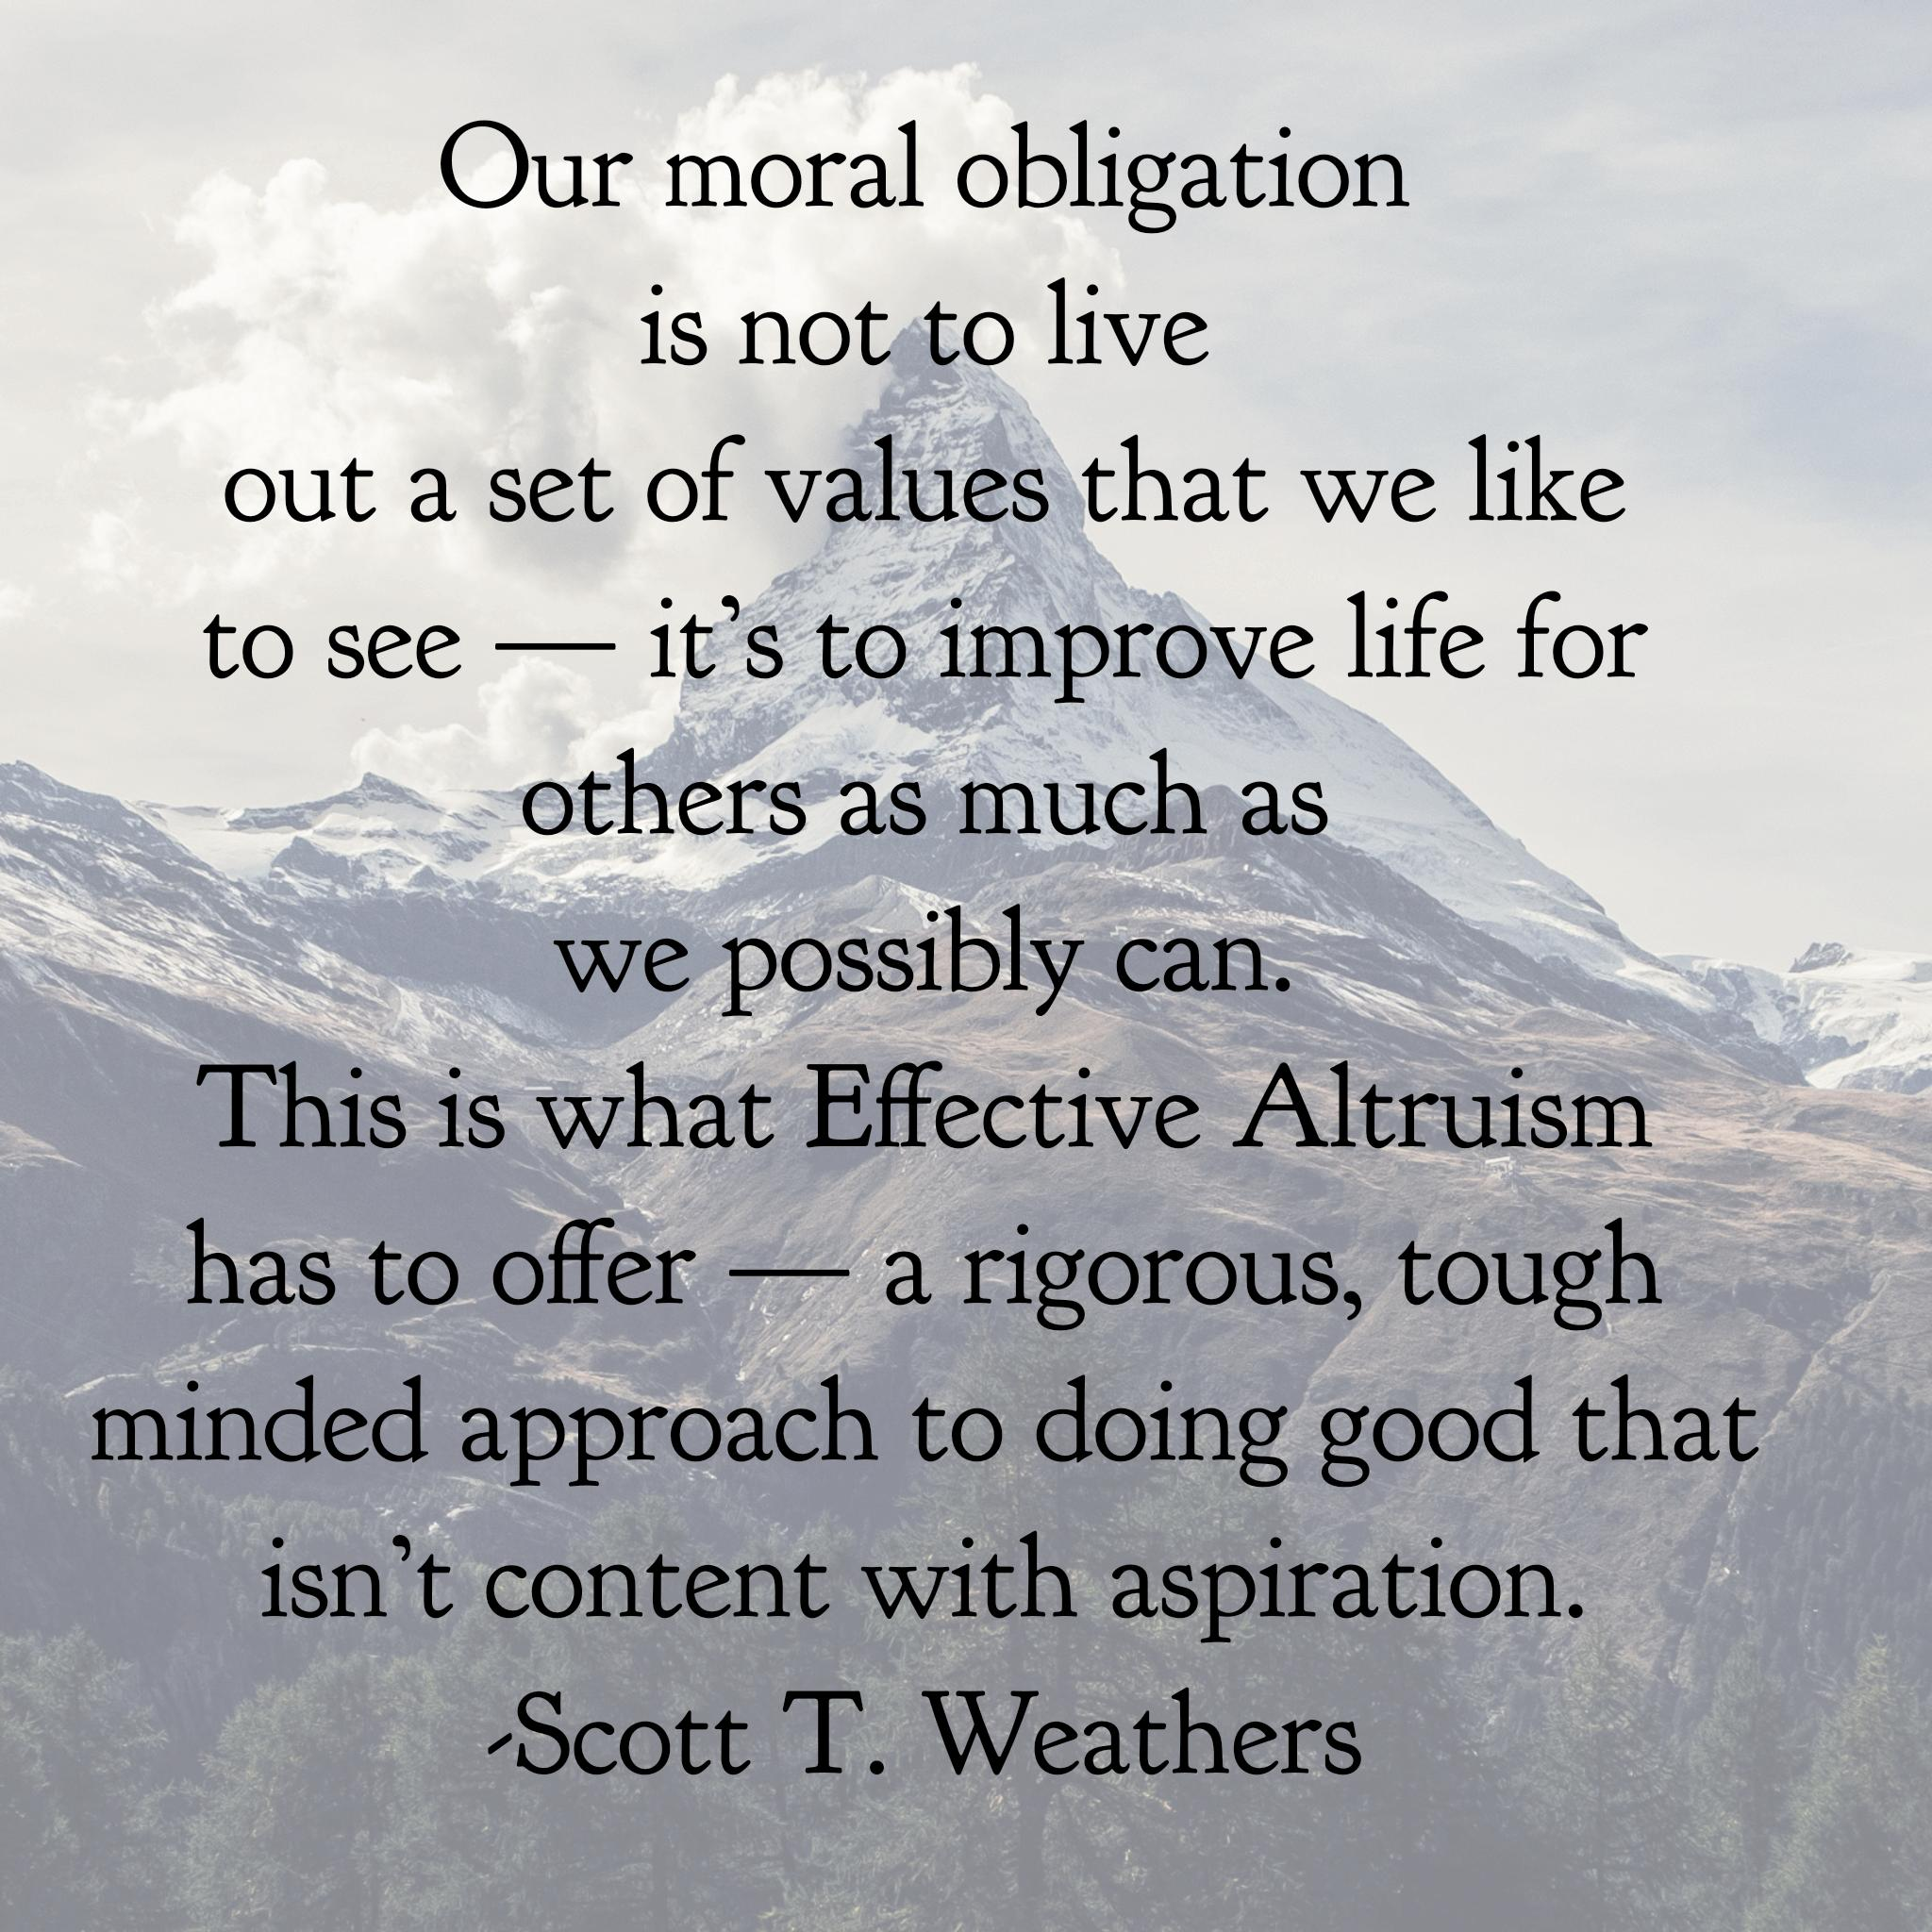 """Our moral obligation is not to live out a set of values that we like to see — it's to improve life for others as much as we possibly can. That is what Effective Altruism has to offer — a rigorous, tough minded approach to doing good that isn't content with aspiration."" -Scott Weathers [2048×2048]"